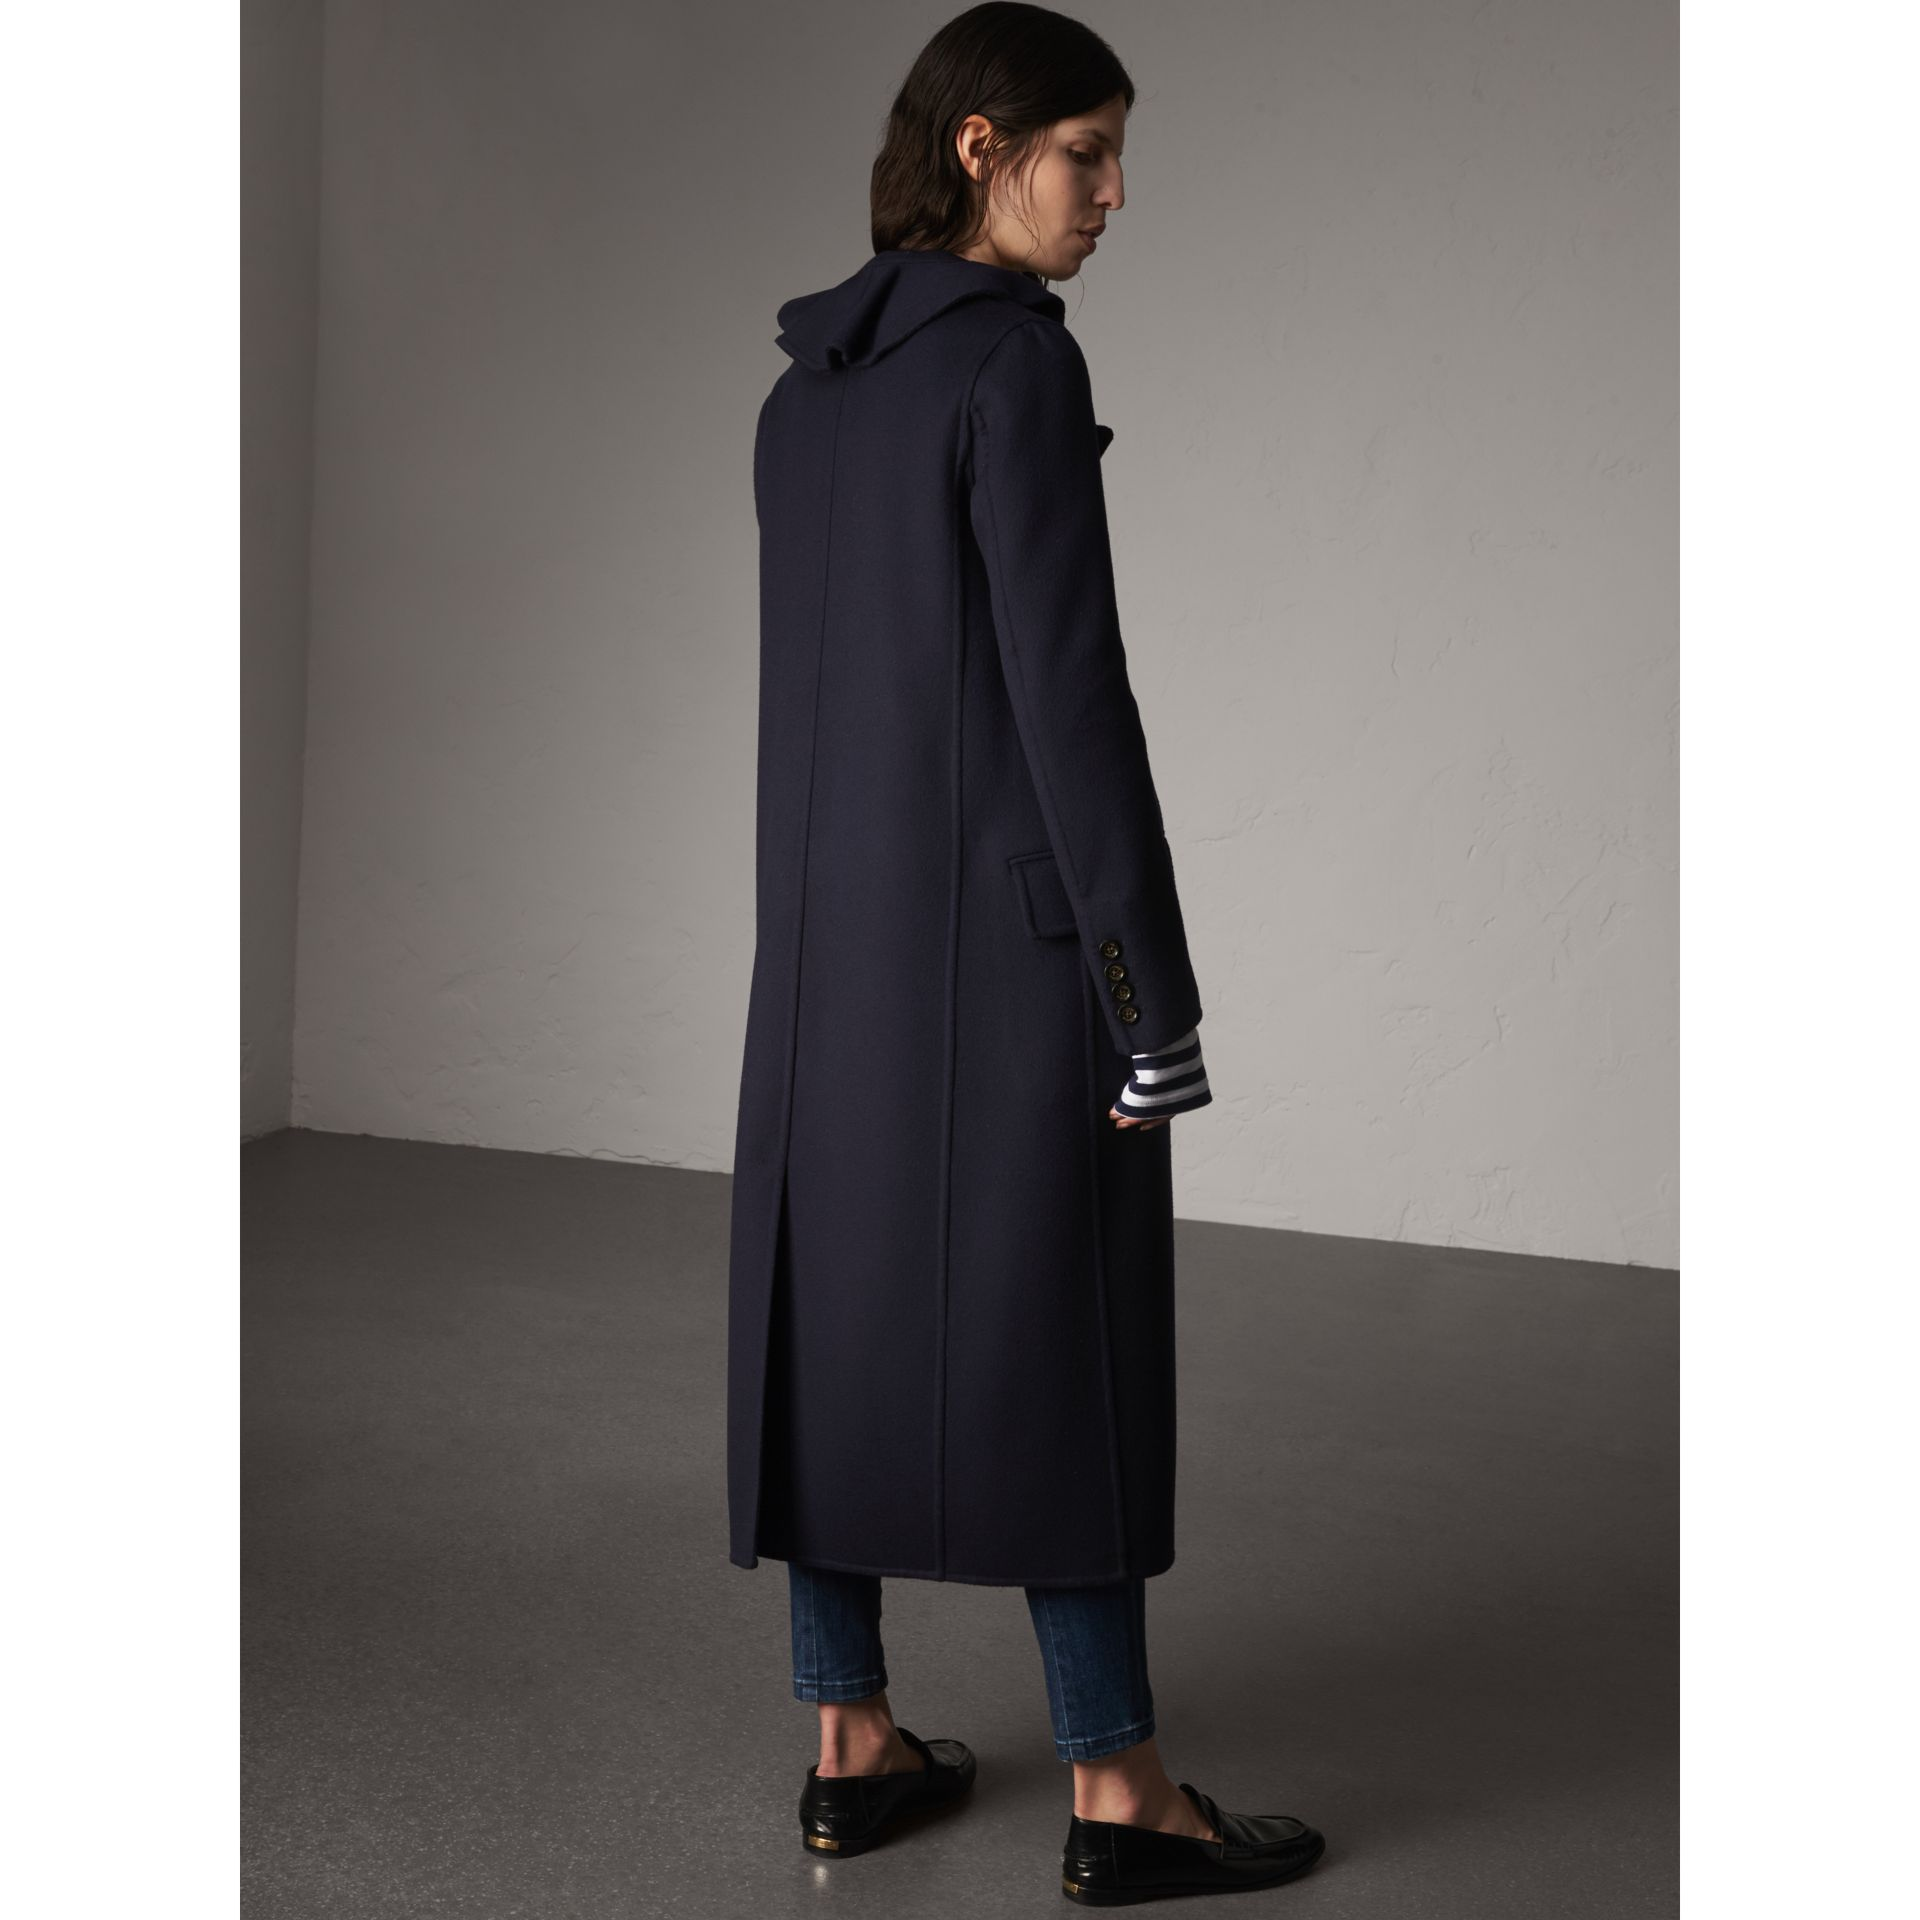 Ruffled Collar Wool Cashmere Coat in Navy - Women | Burberry Singapore - gallery image 3